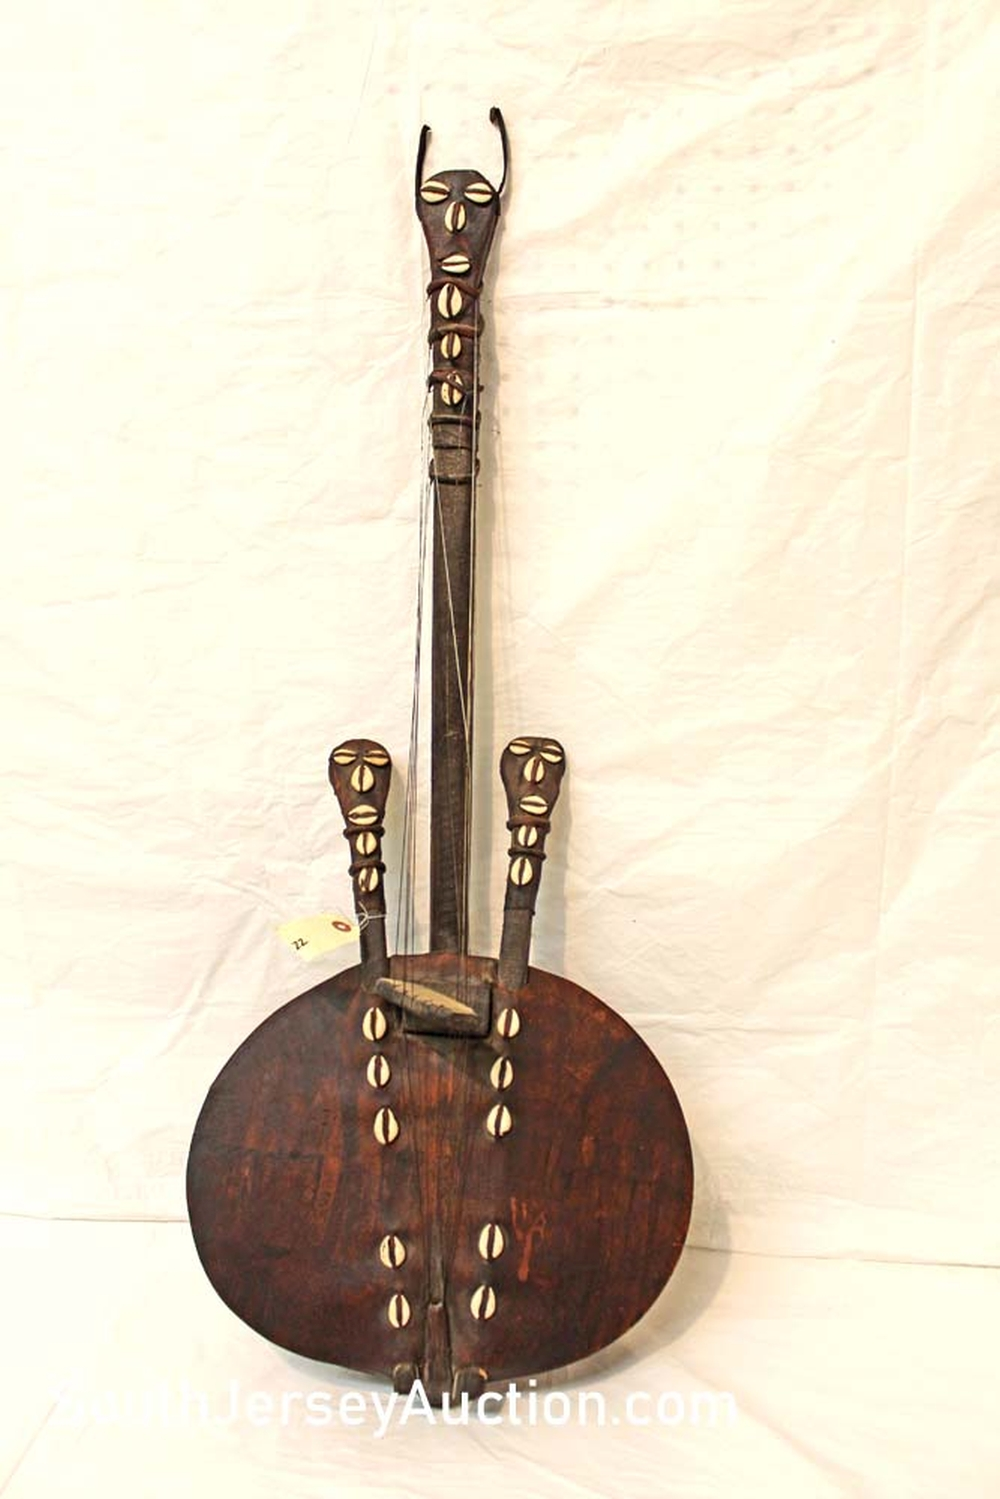 Primitive African Gourd Tribal Musical String Item good condition